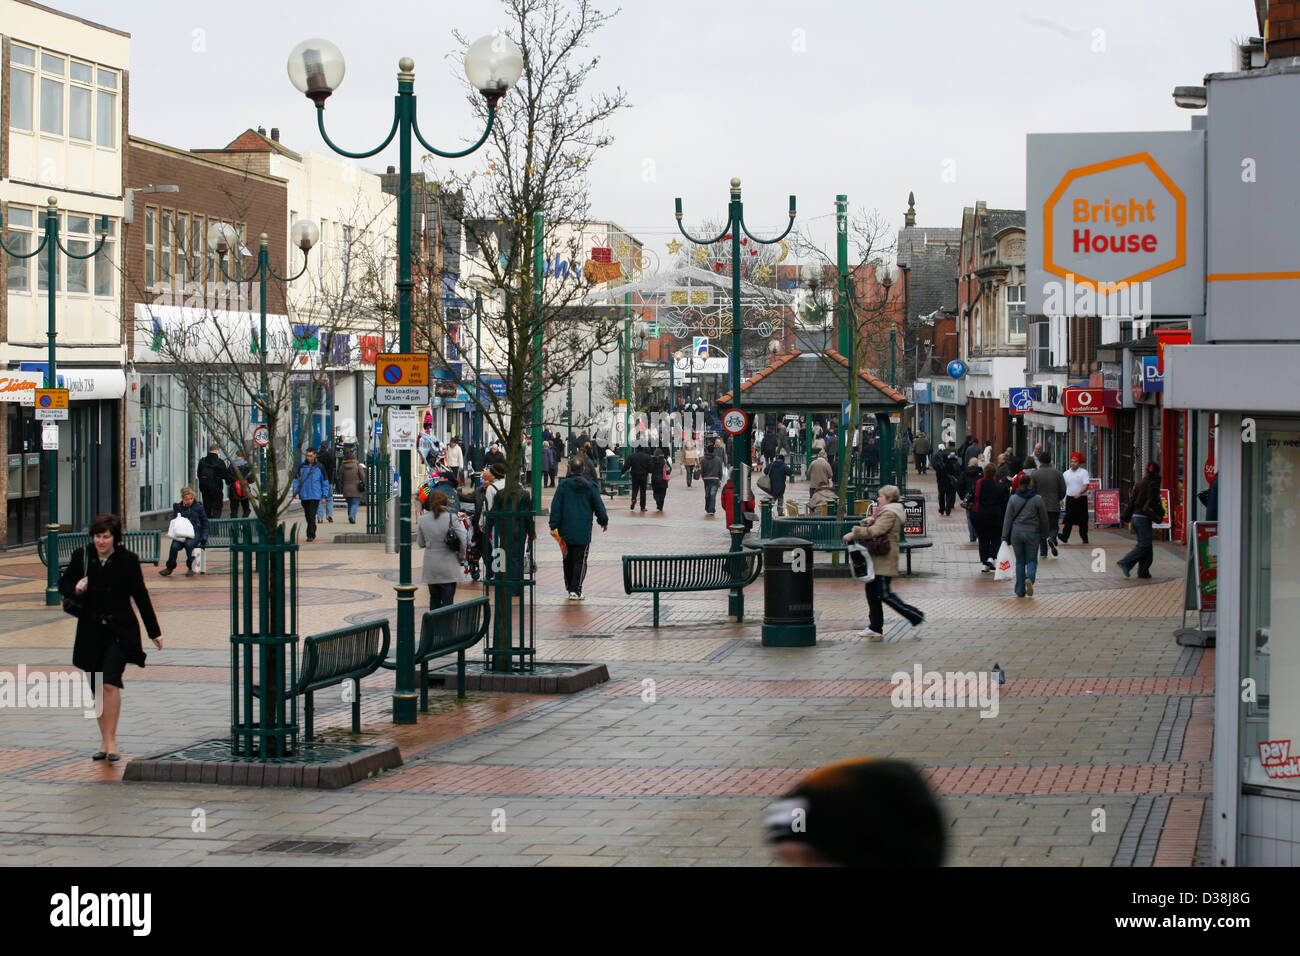 Scunthorpe Town Centre High Street Stock Photo Royalty